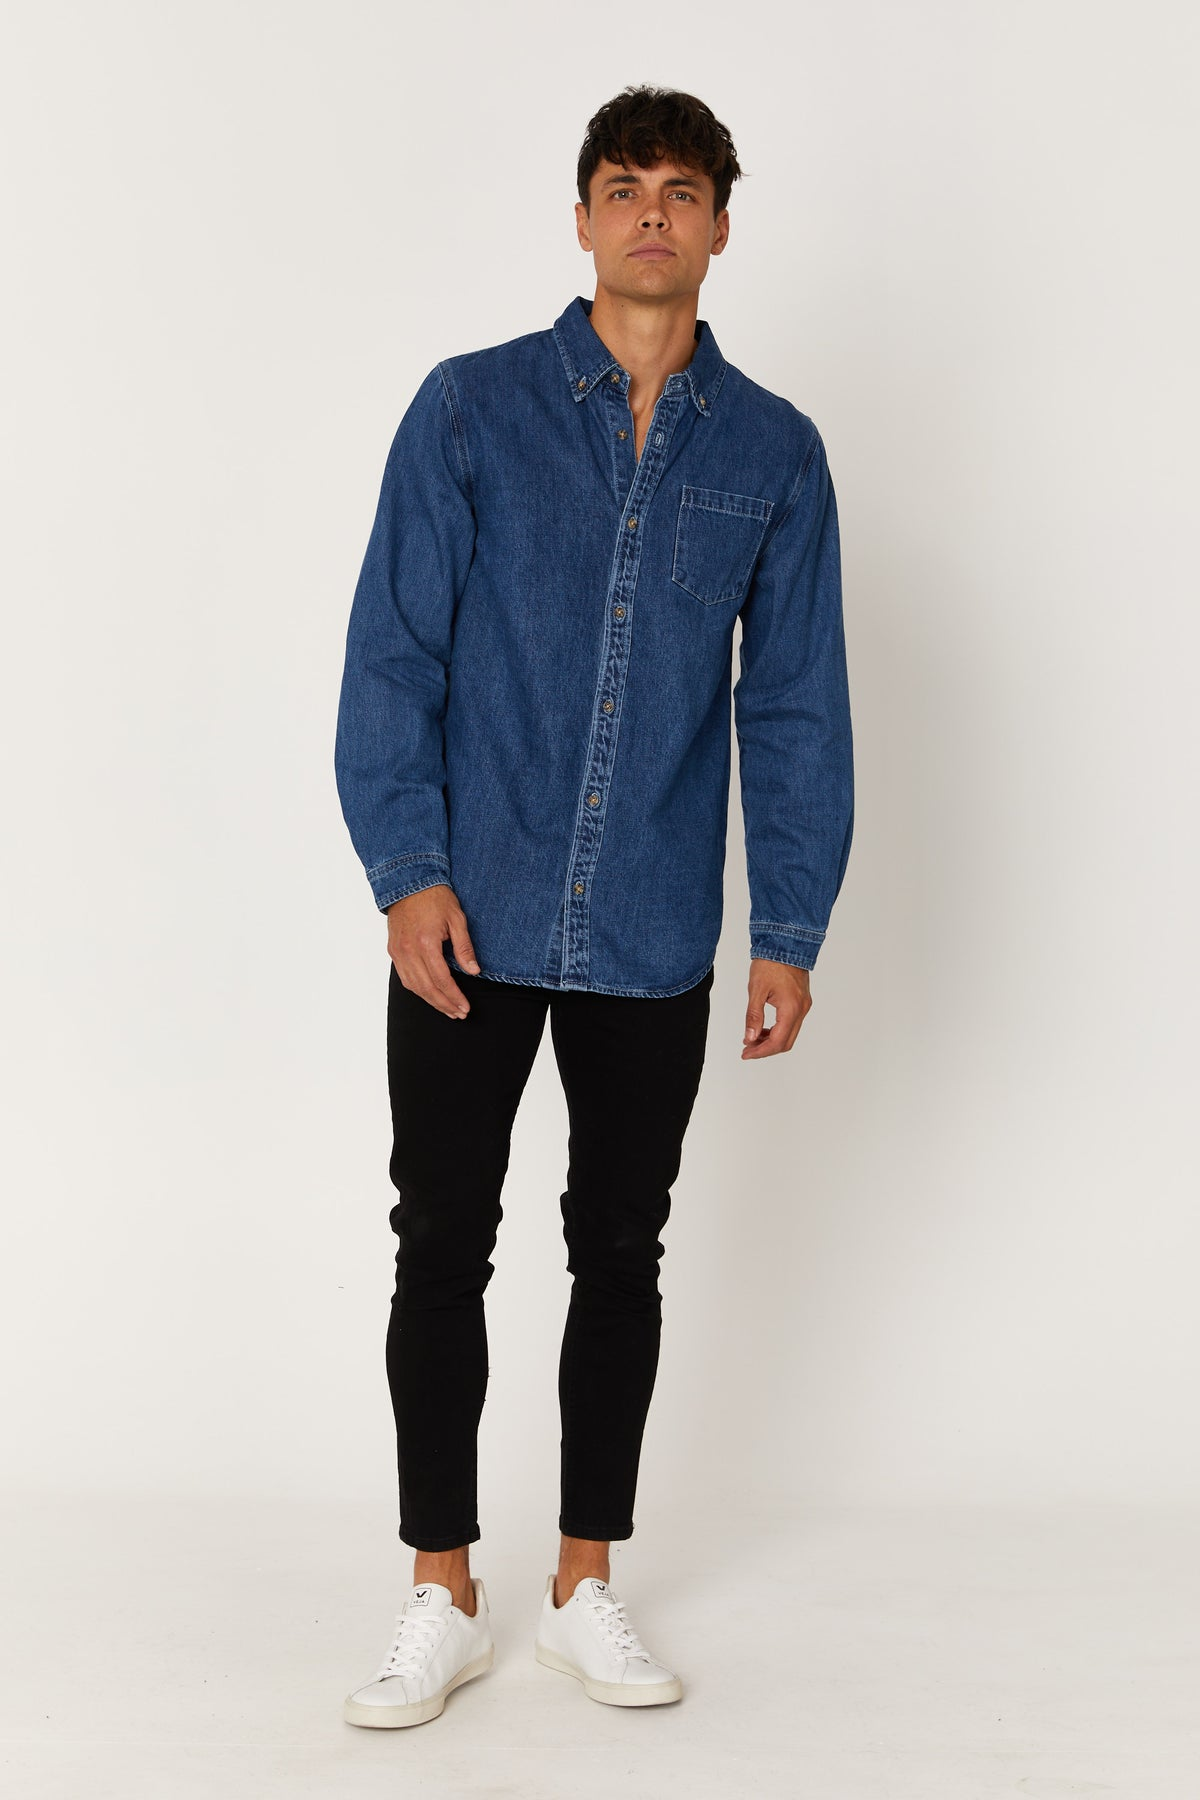 NTH Staple Denim Shirt Indigo